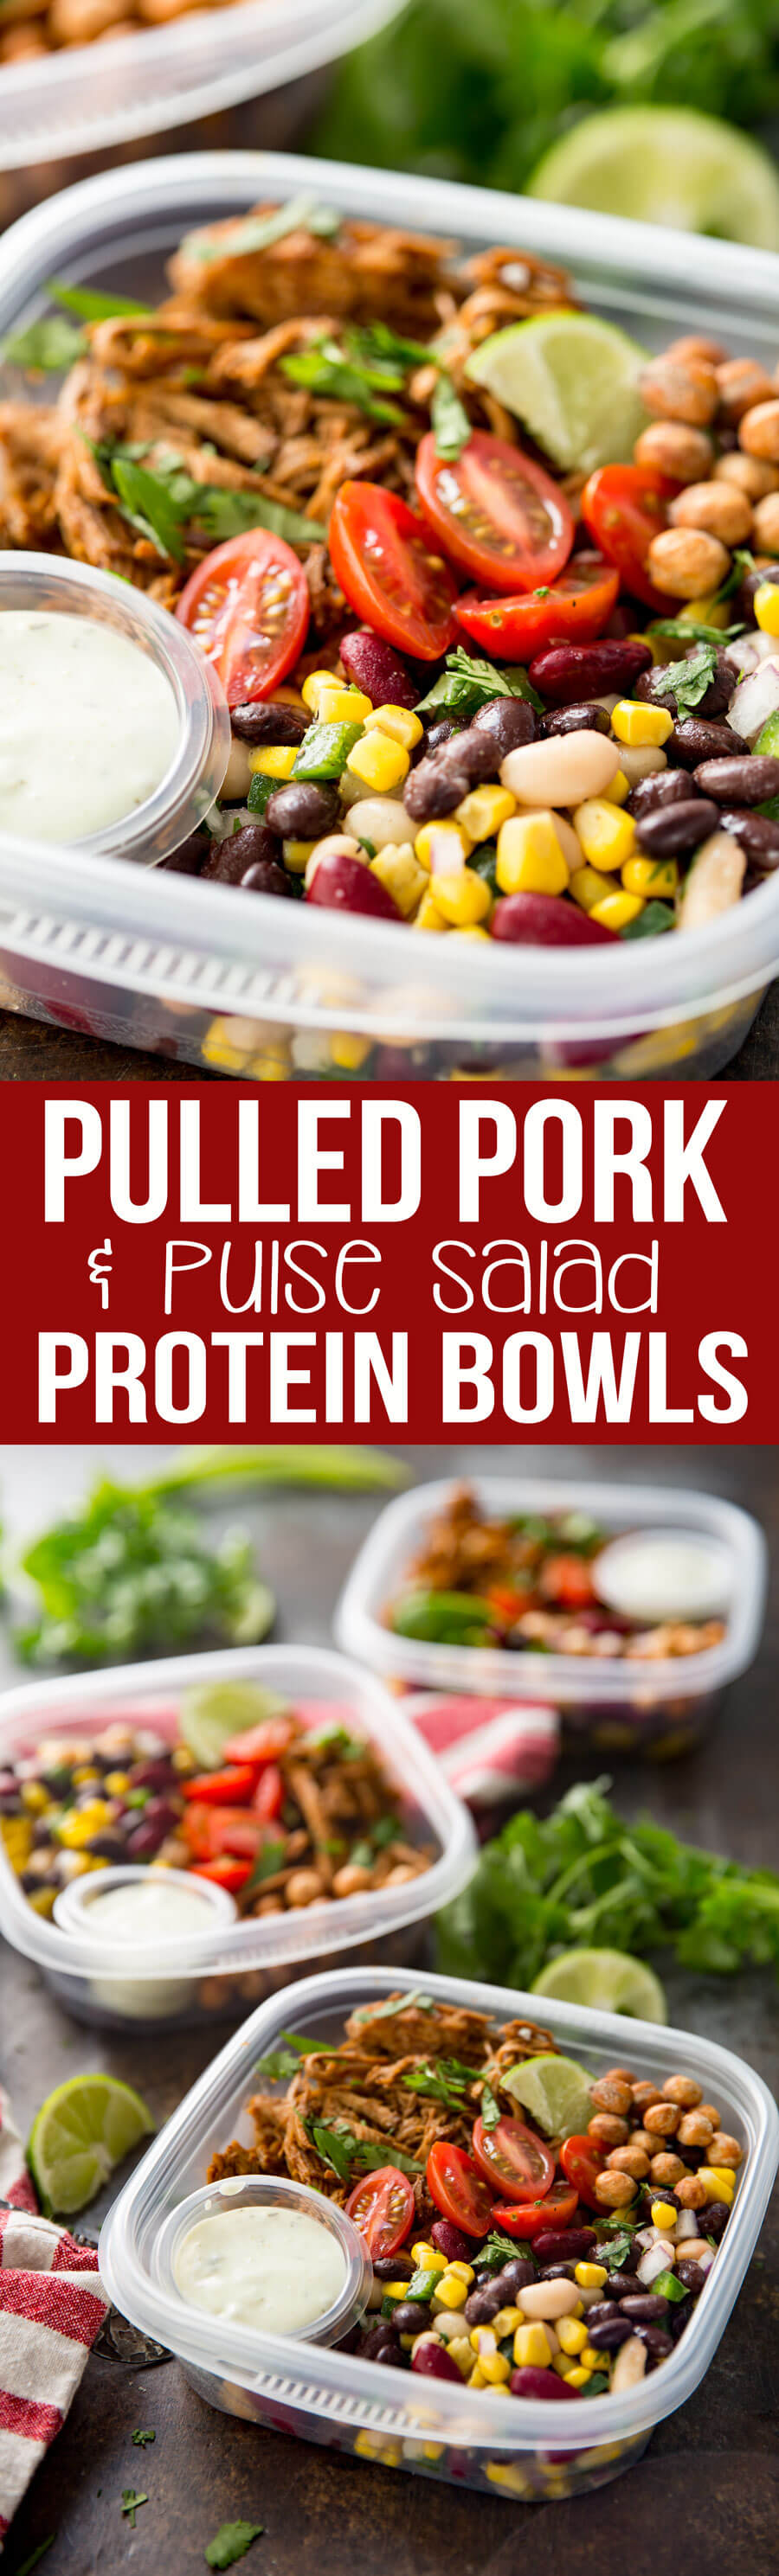 Pulled Pork Pulse Protein Bowl cooked in instant pot and easy to make meal prep